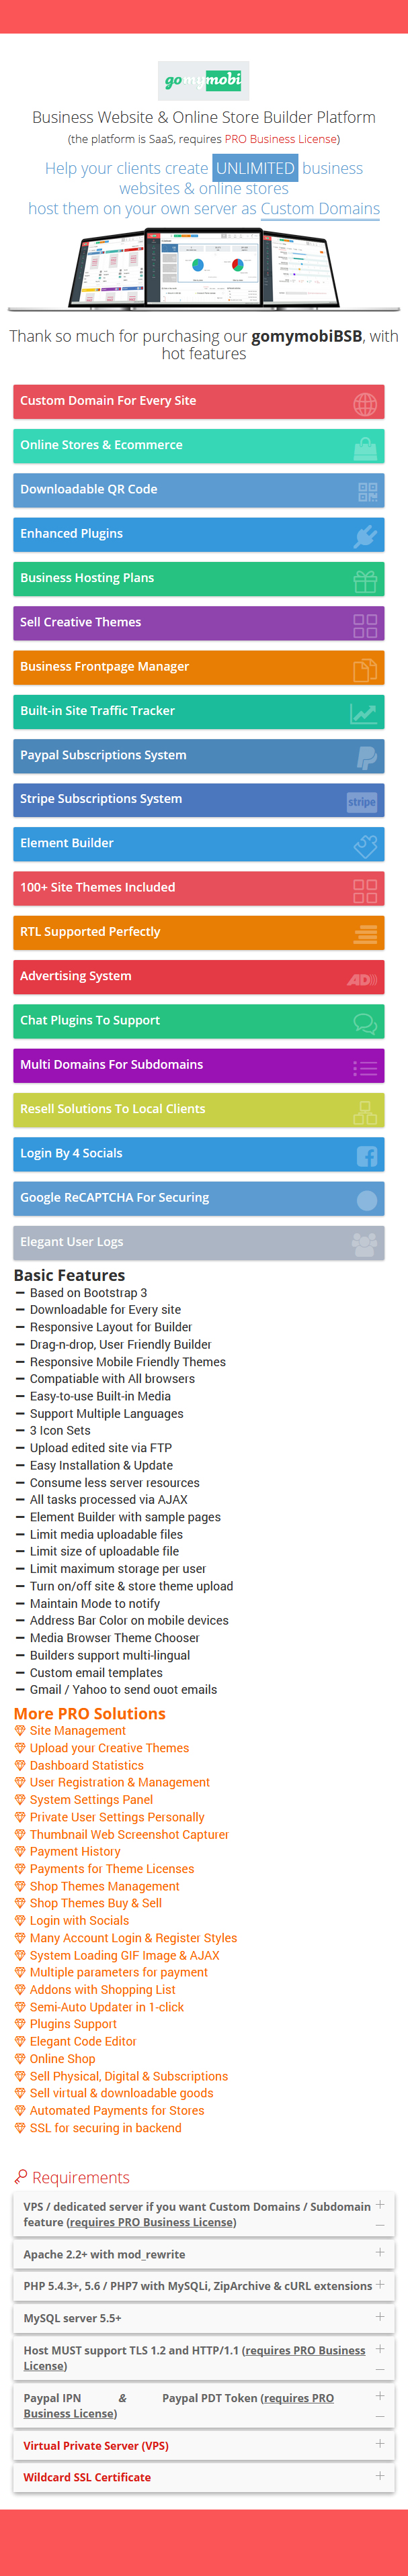 gomymobiBSB 2021 (v3): B2C Site & Store Builder with Domains, Element Builder, Paypal, Chat - 4